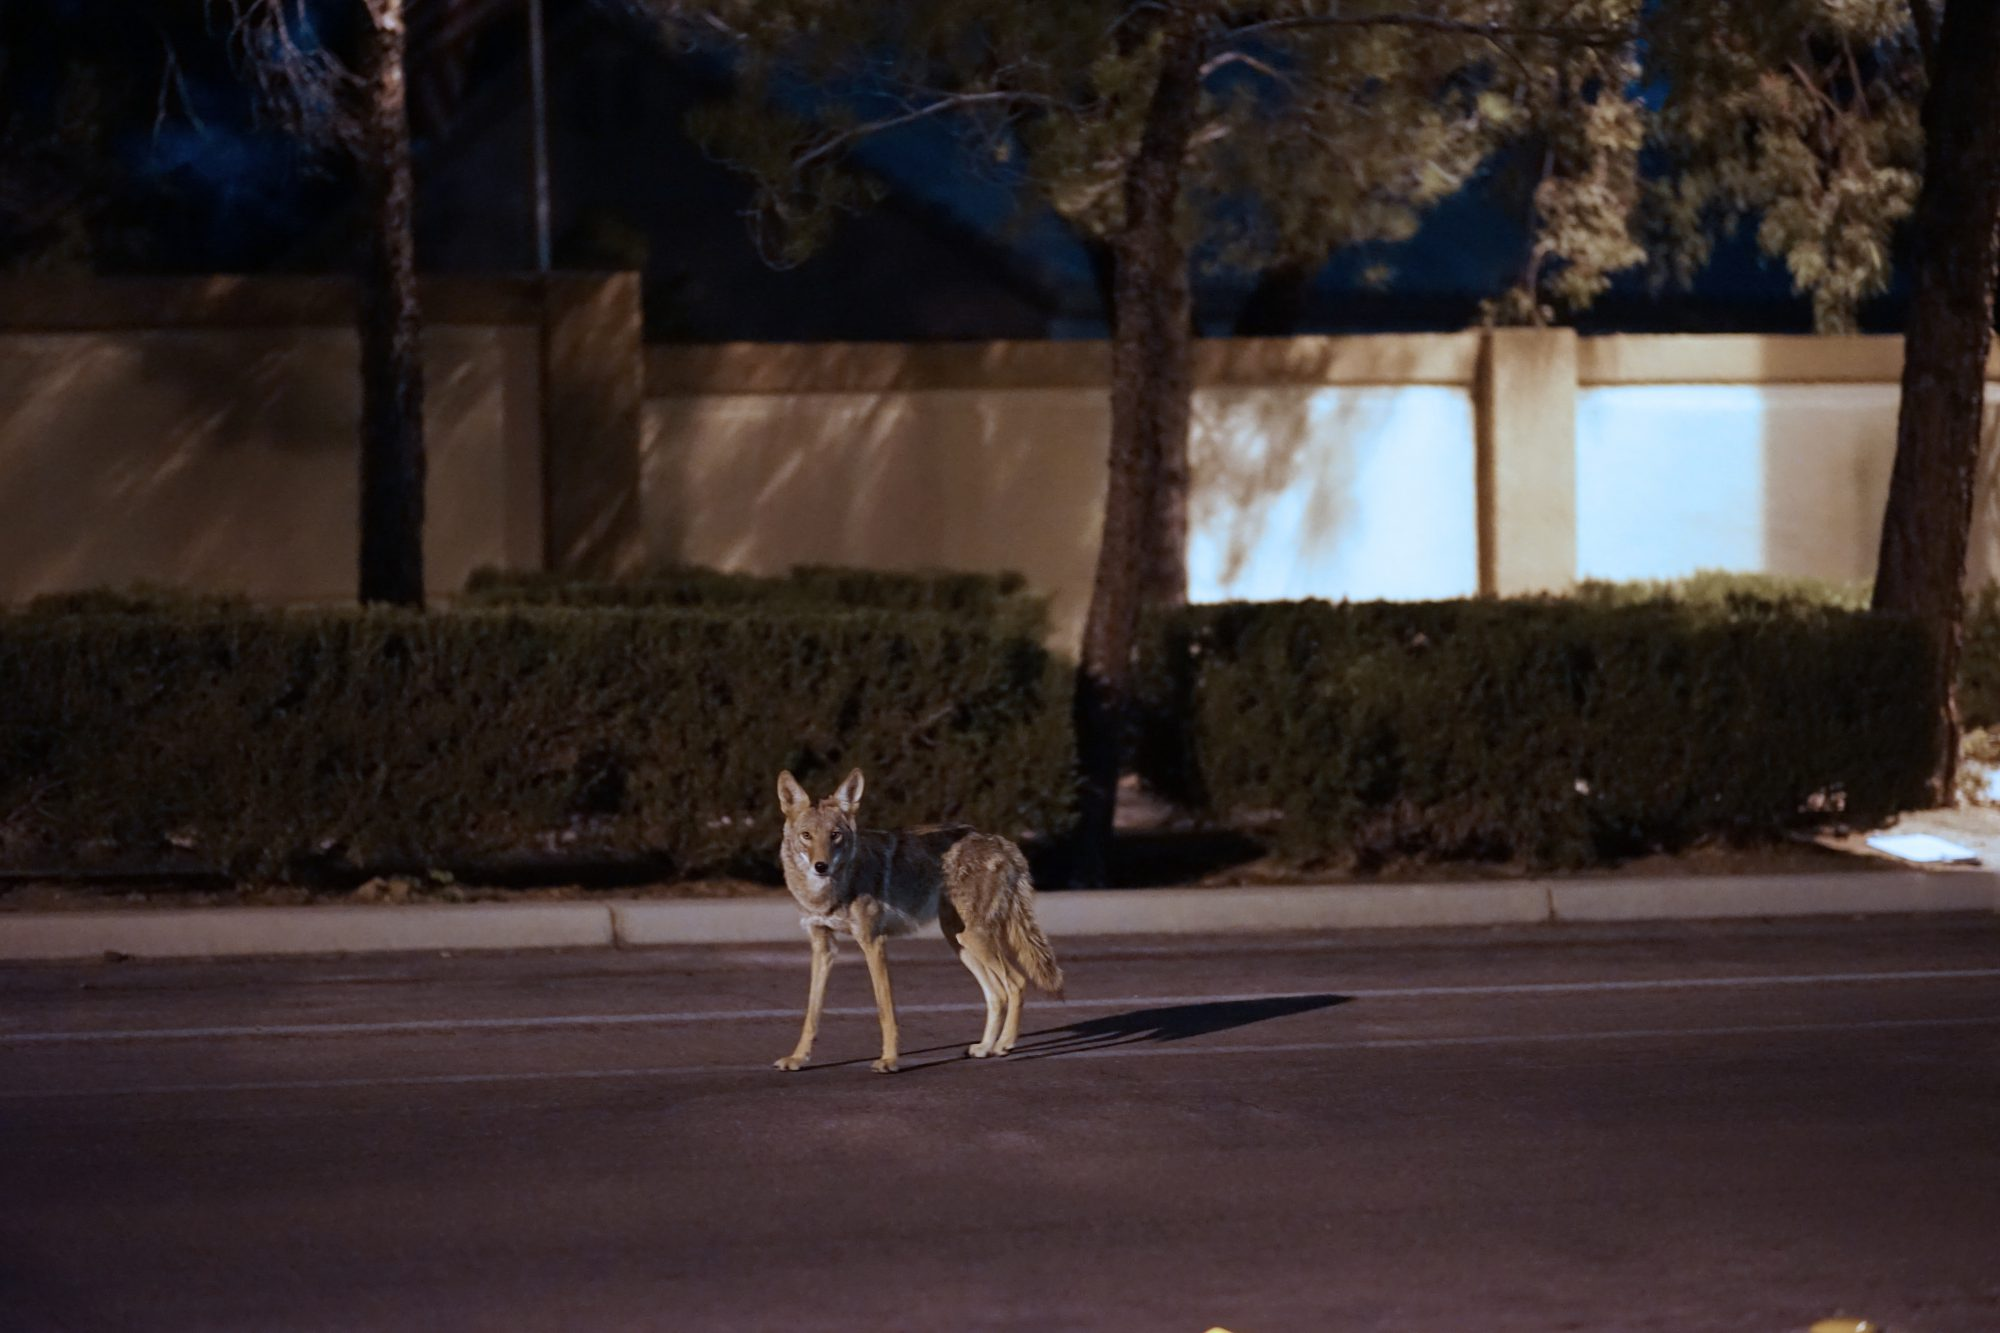 Coyote Roaming A Suburb Street